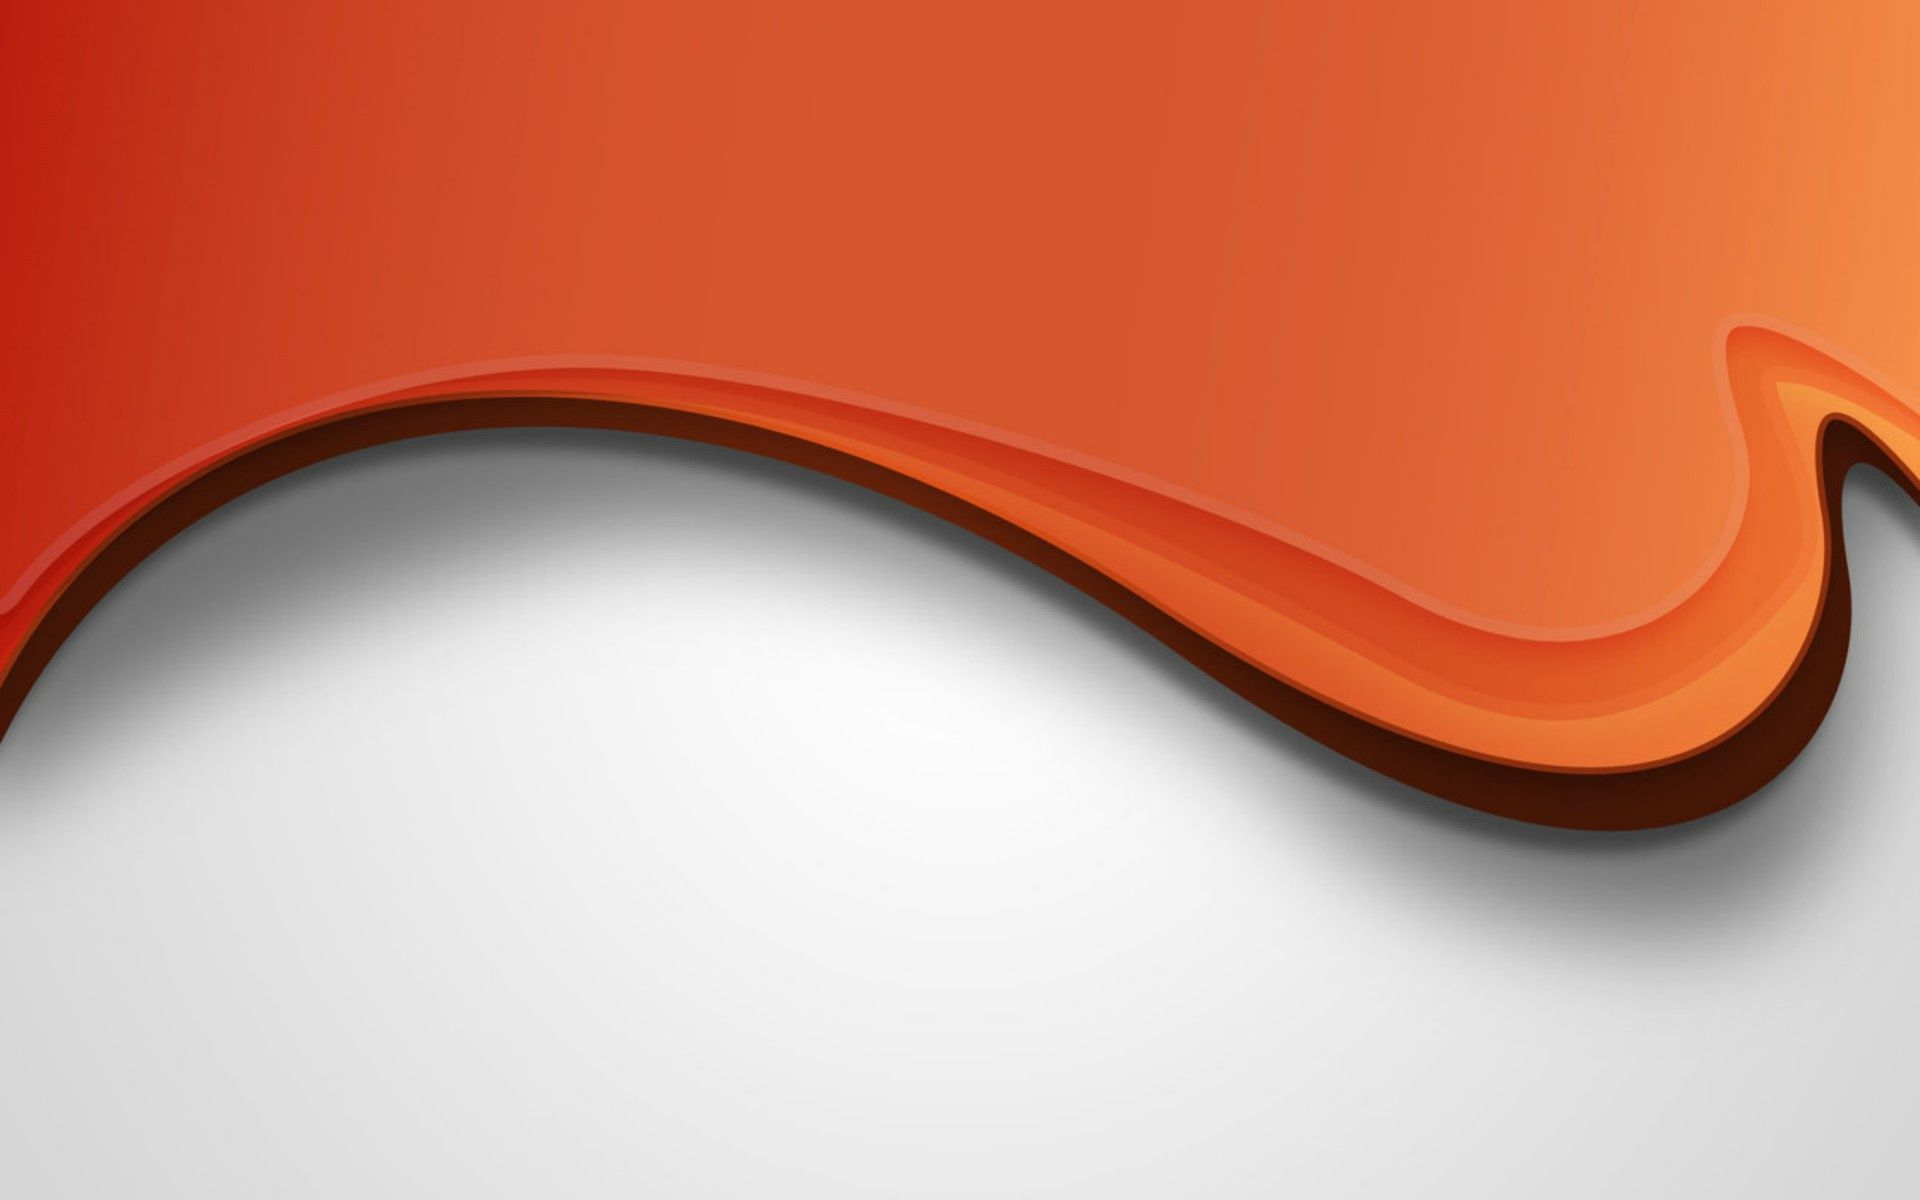 Orange wave on white Widescreen Wallpaper   6033 1920x1200